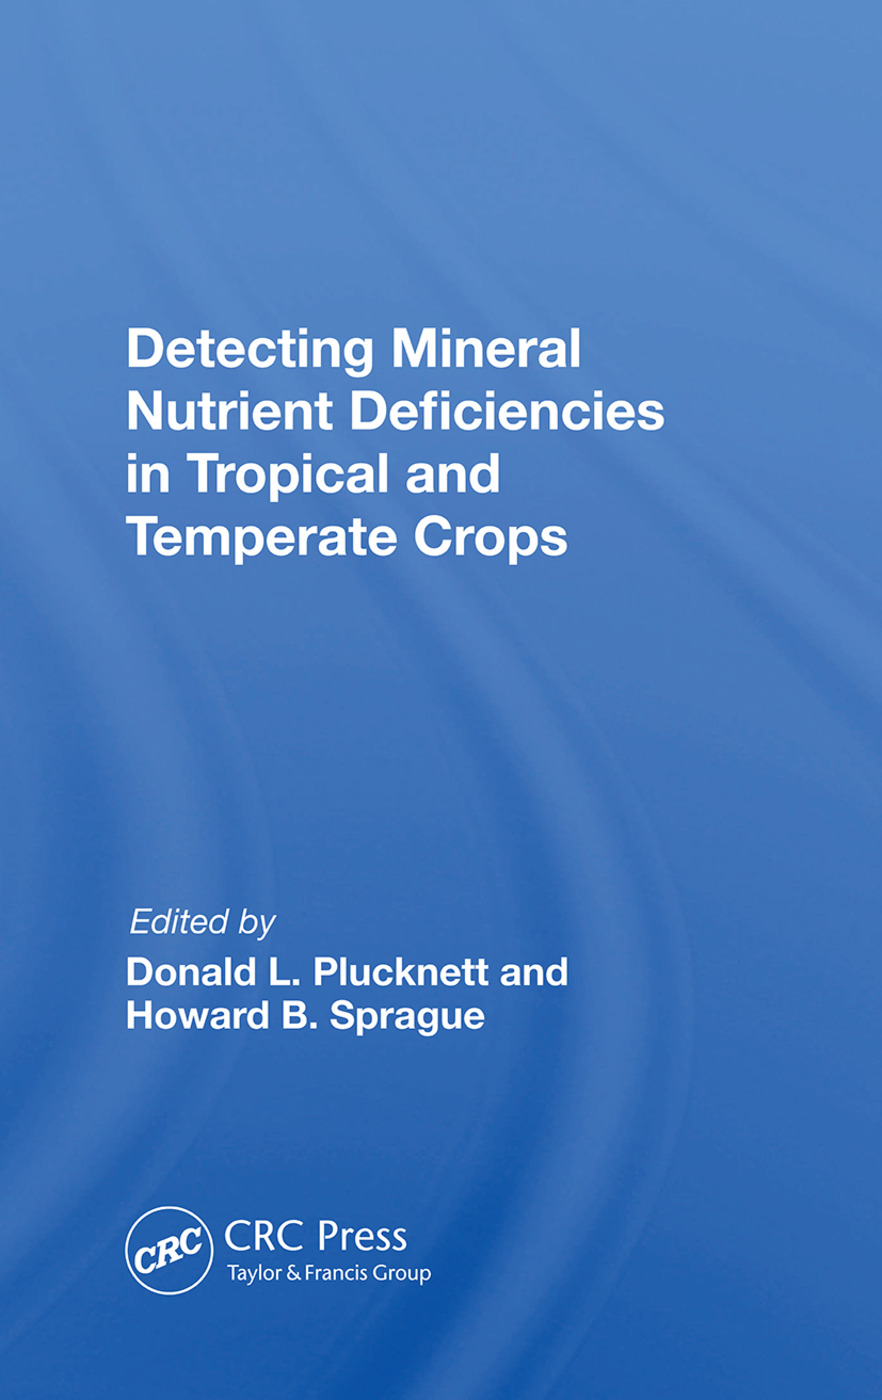 Detecting Mineral Nutrient Deficiencies in Tropical and Temperate Crops